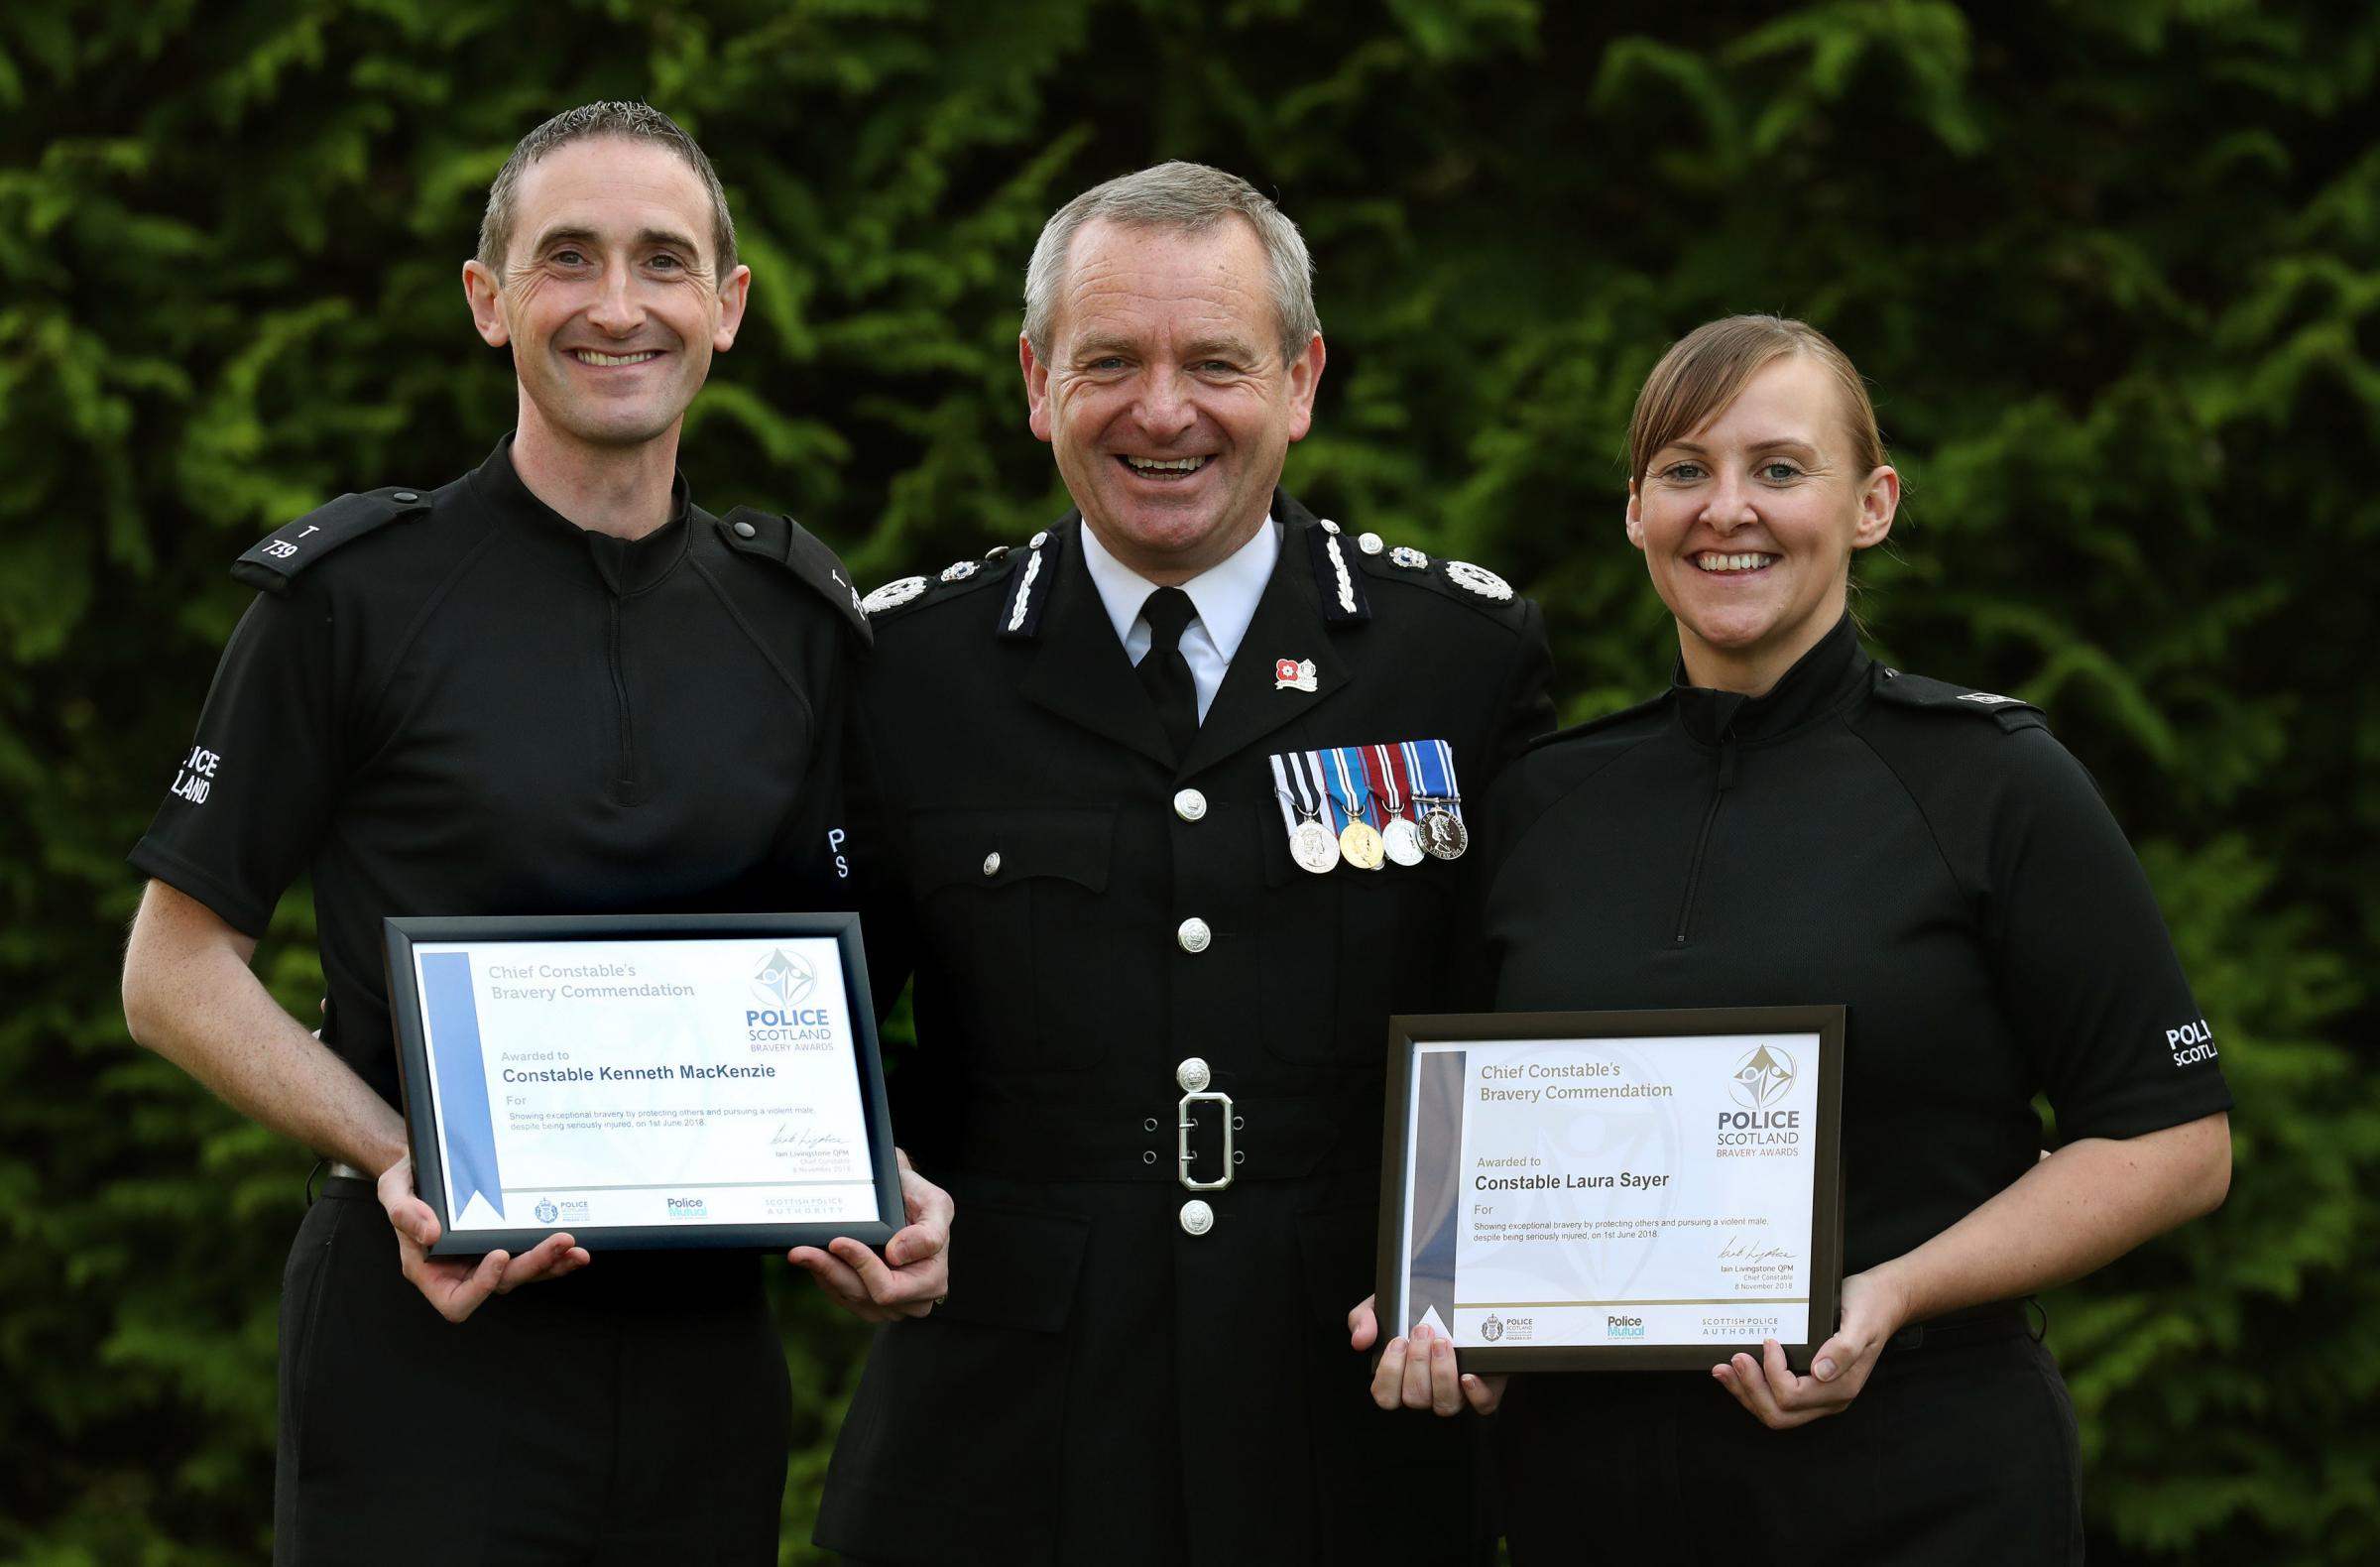 Police Constables Laura Sayer and Kenneth MacKenzie who were seriously injured during an incident in Greenock have received an award for bravery from Chief Constable Iain Livingstone(C) , at the Scottish Police College, Tulliallan, Kincardine. PRESS ASSOC